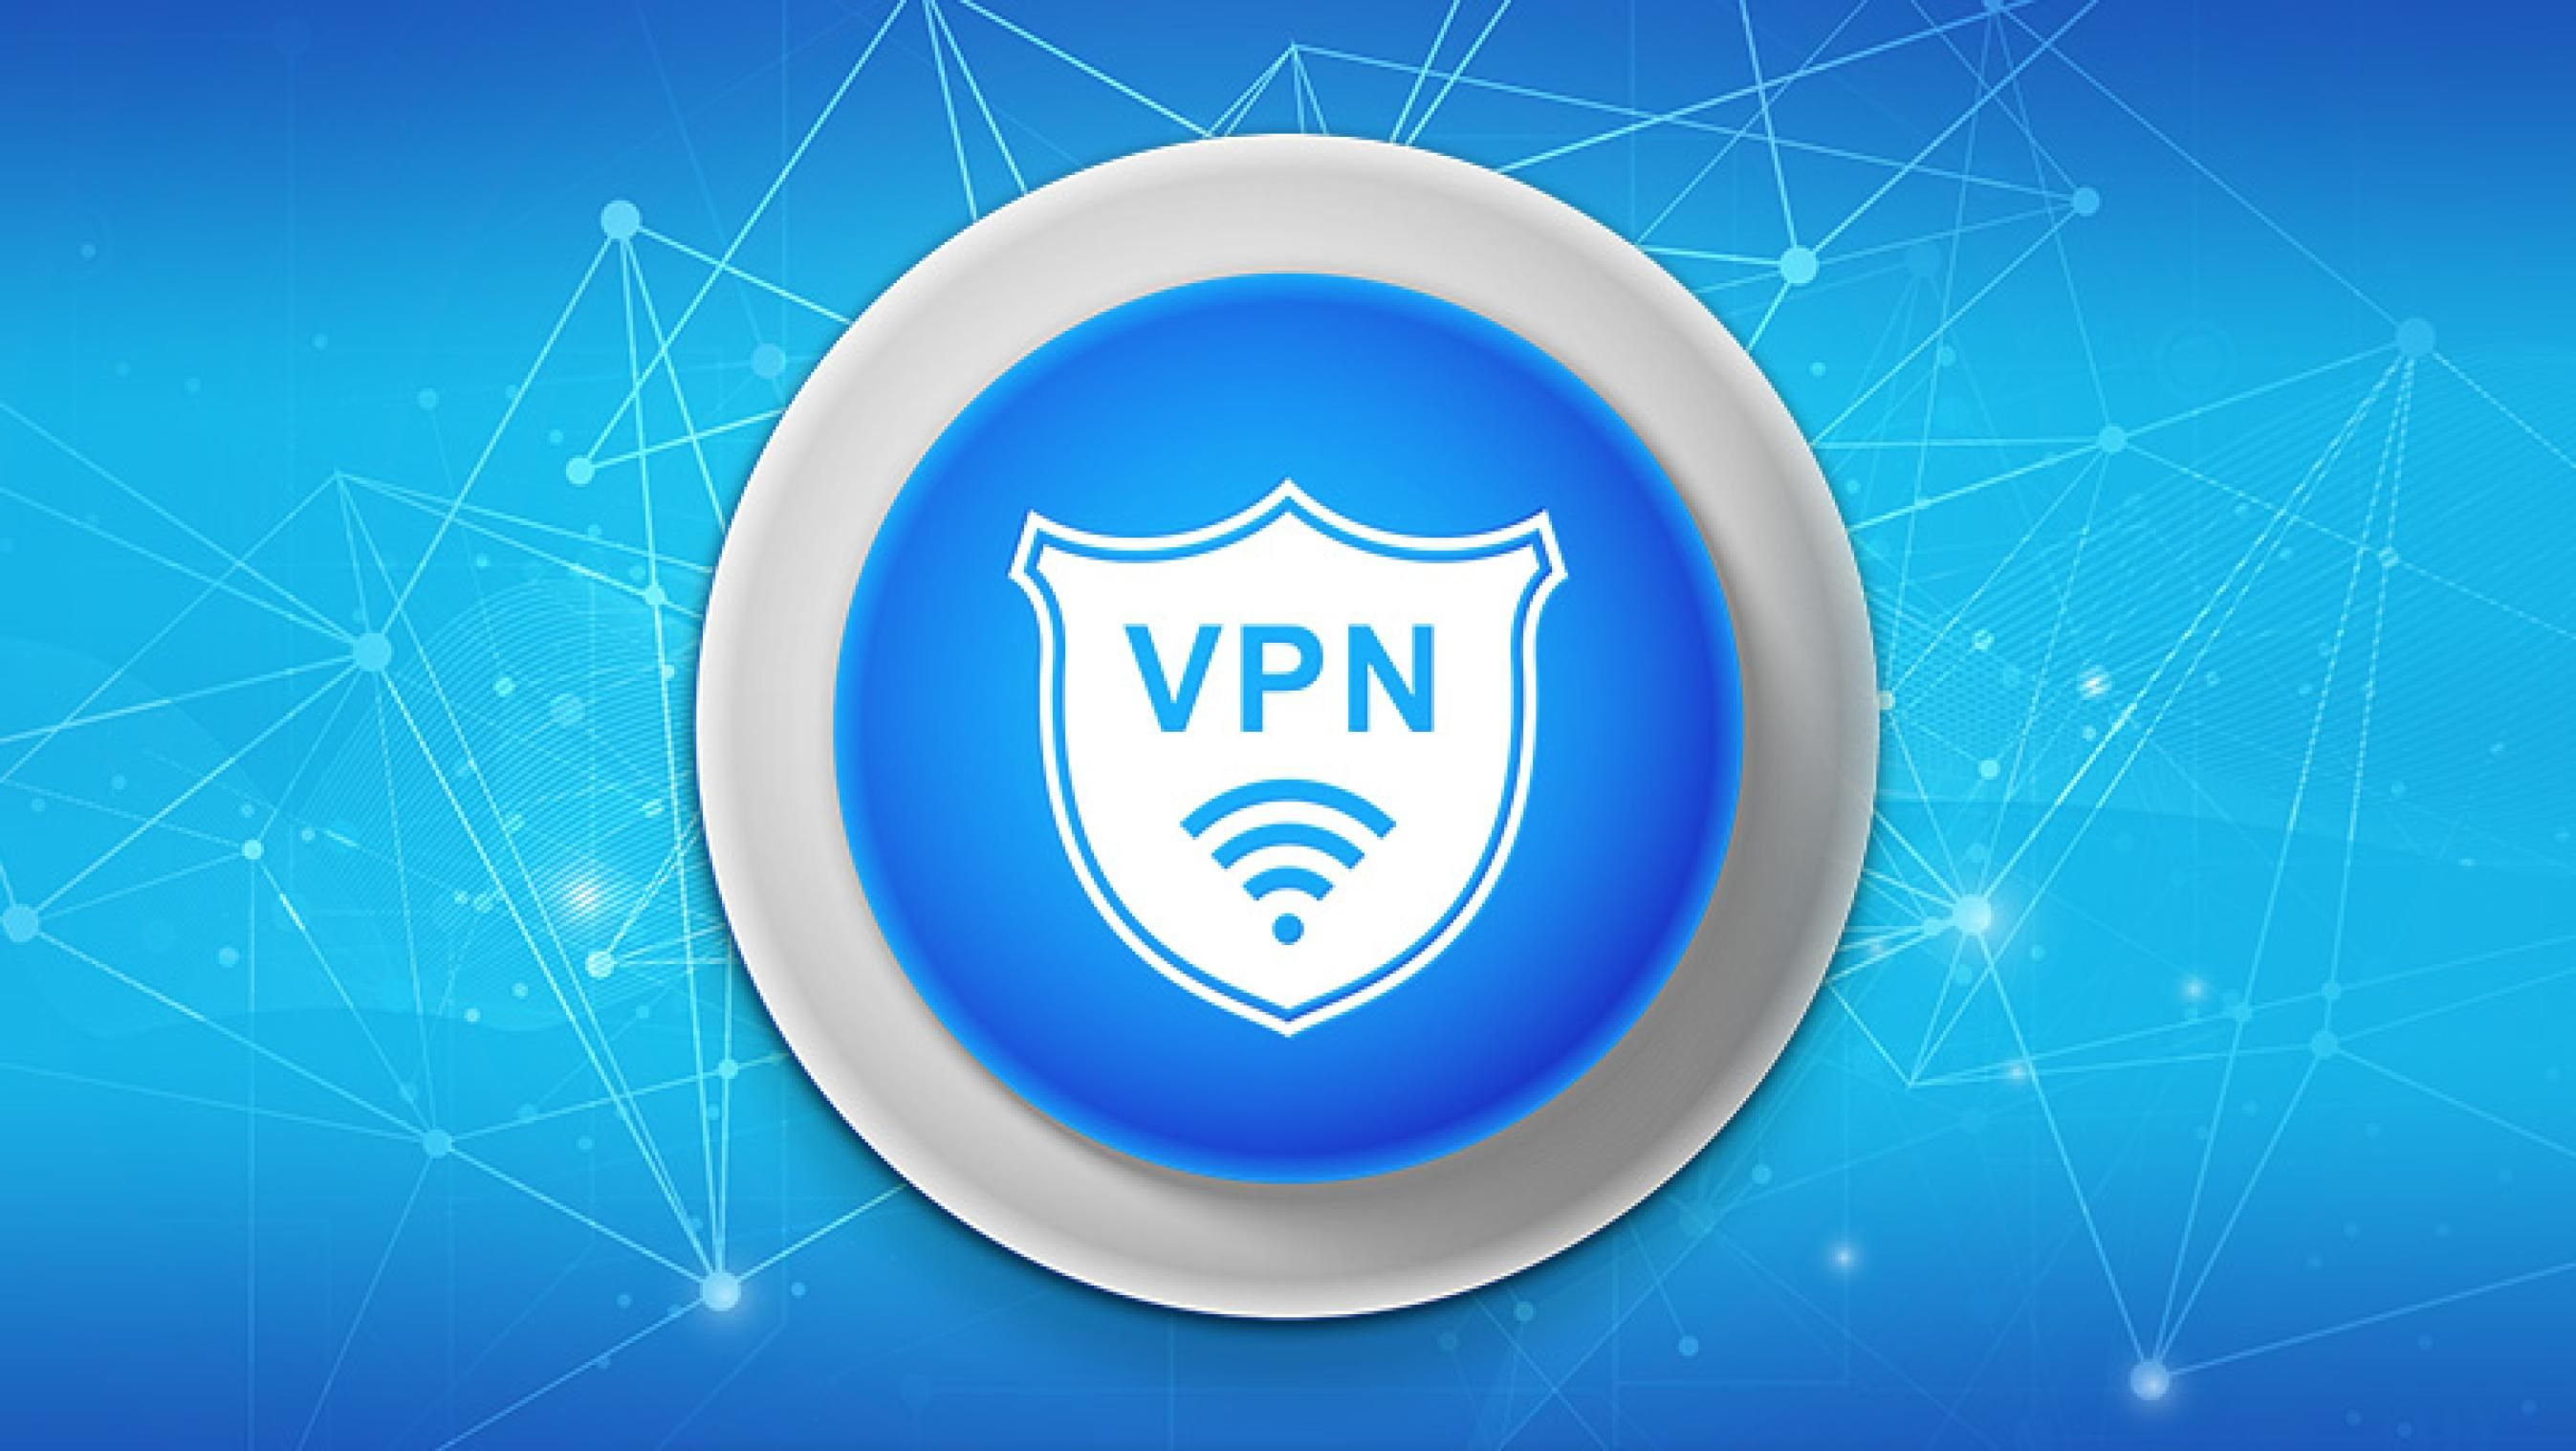 What Does Vpn Mean On Your Iphone